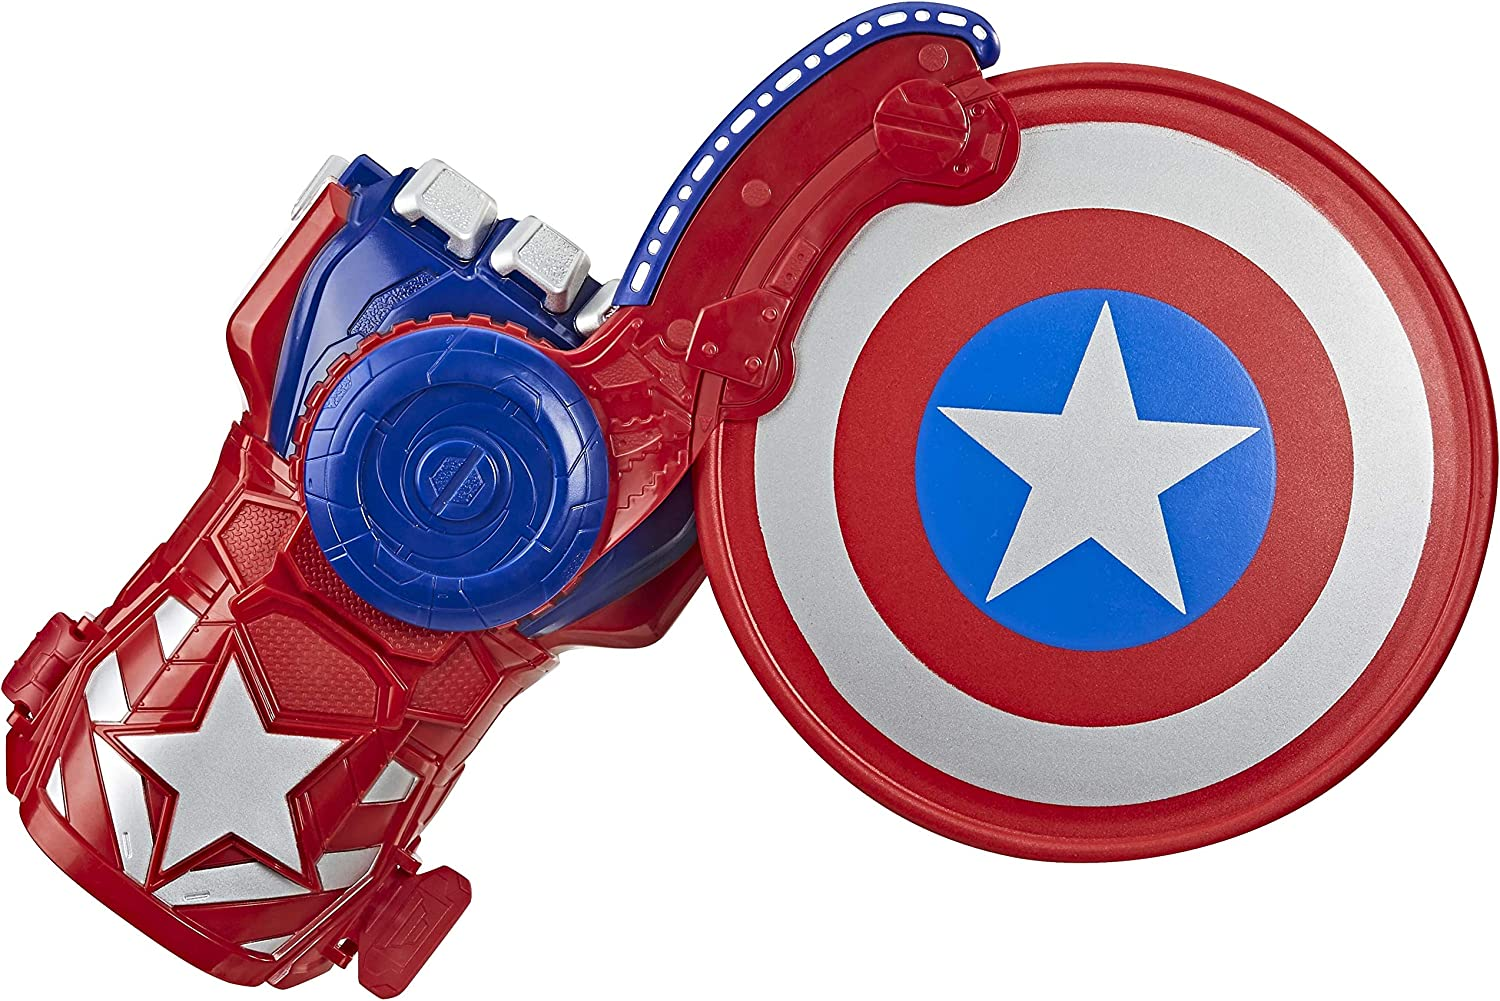 Toys for Kids Ages 5 and Up Nerf Power Moves Marvel Avengers Captain America Shield Sling Nerf Disc-Launching Toy for Kids Roleplay